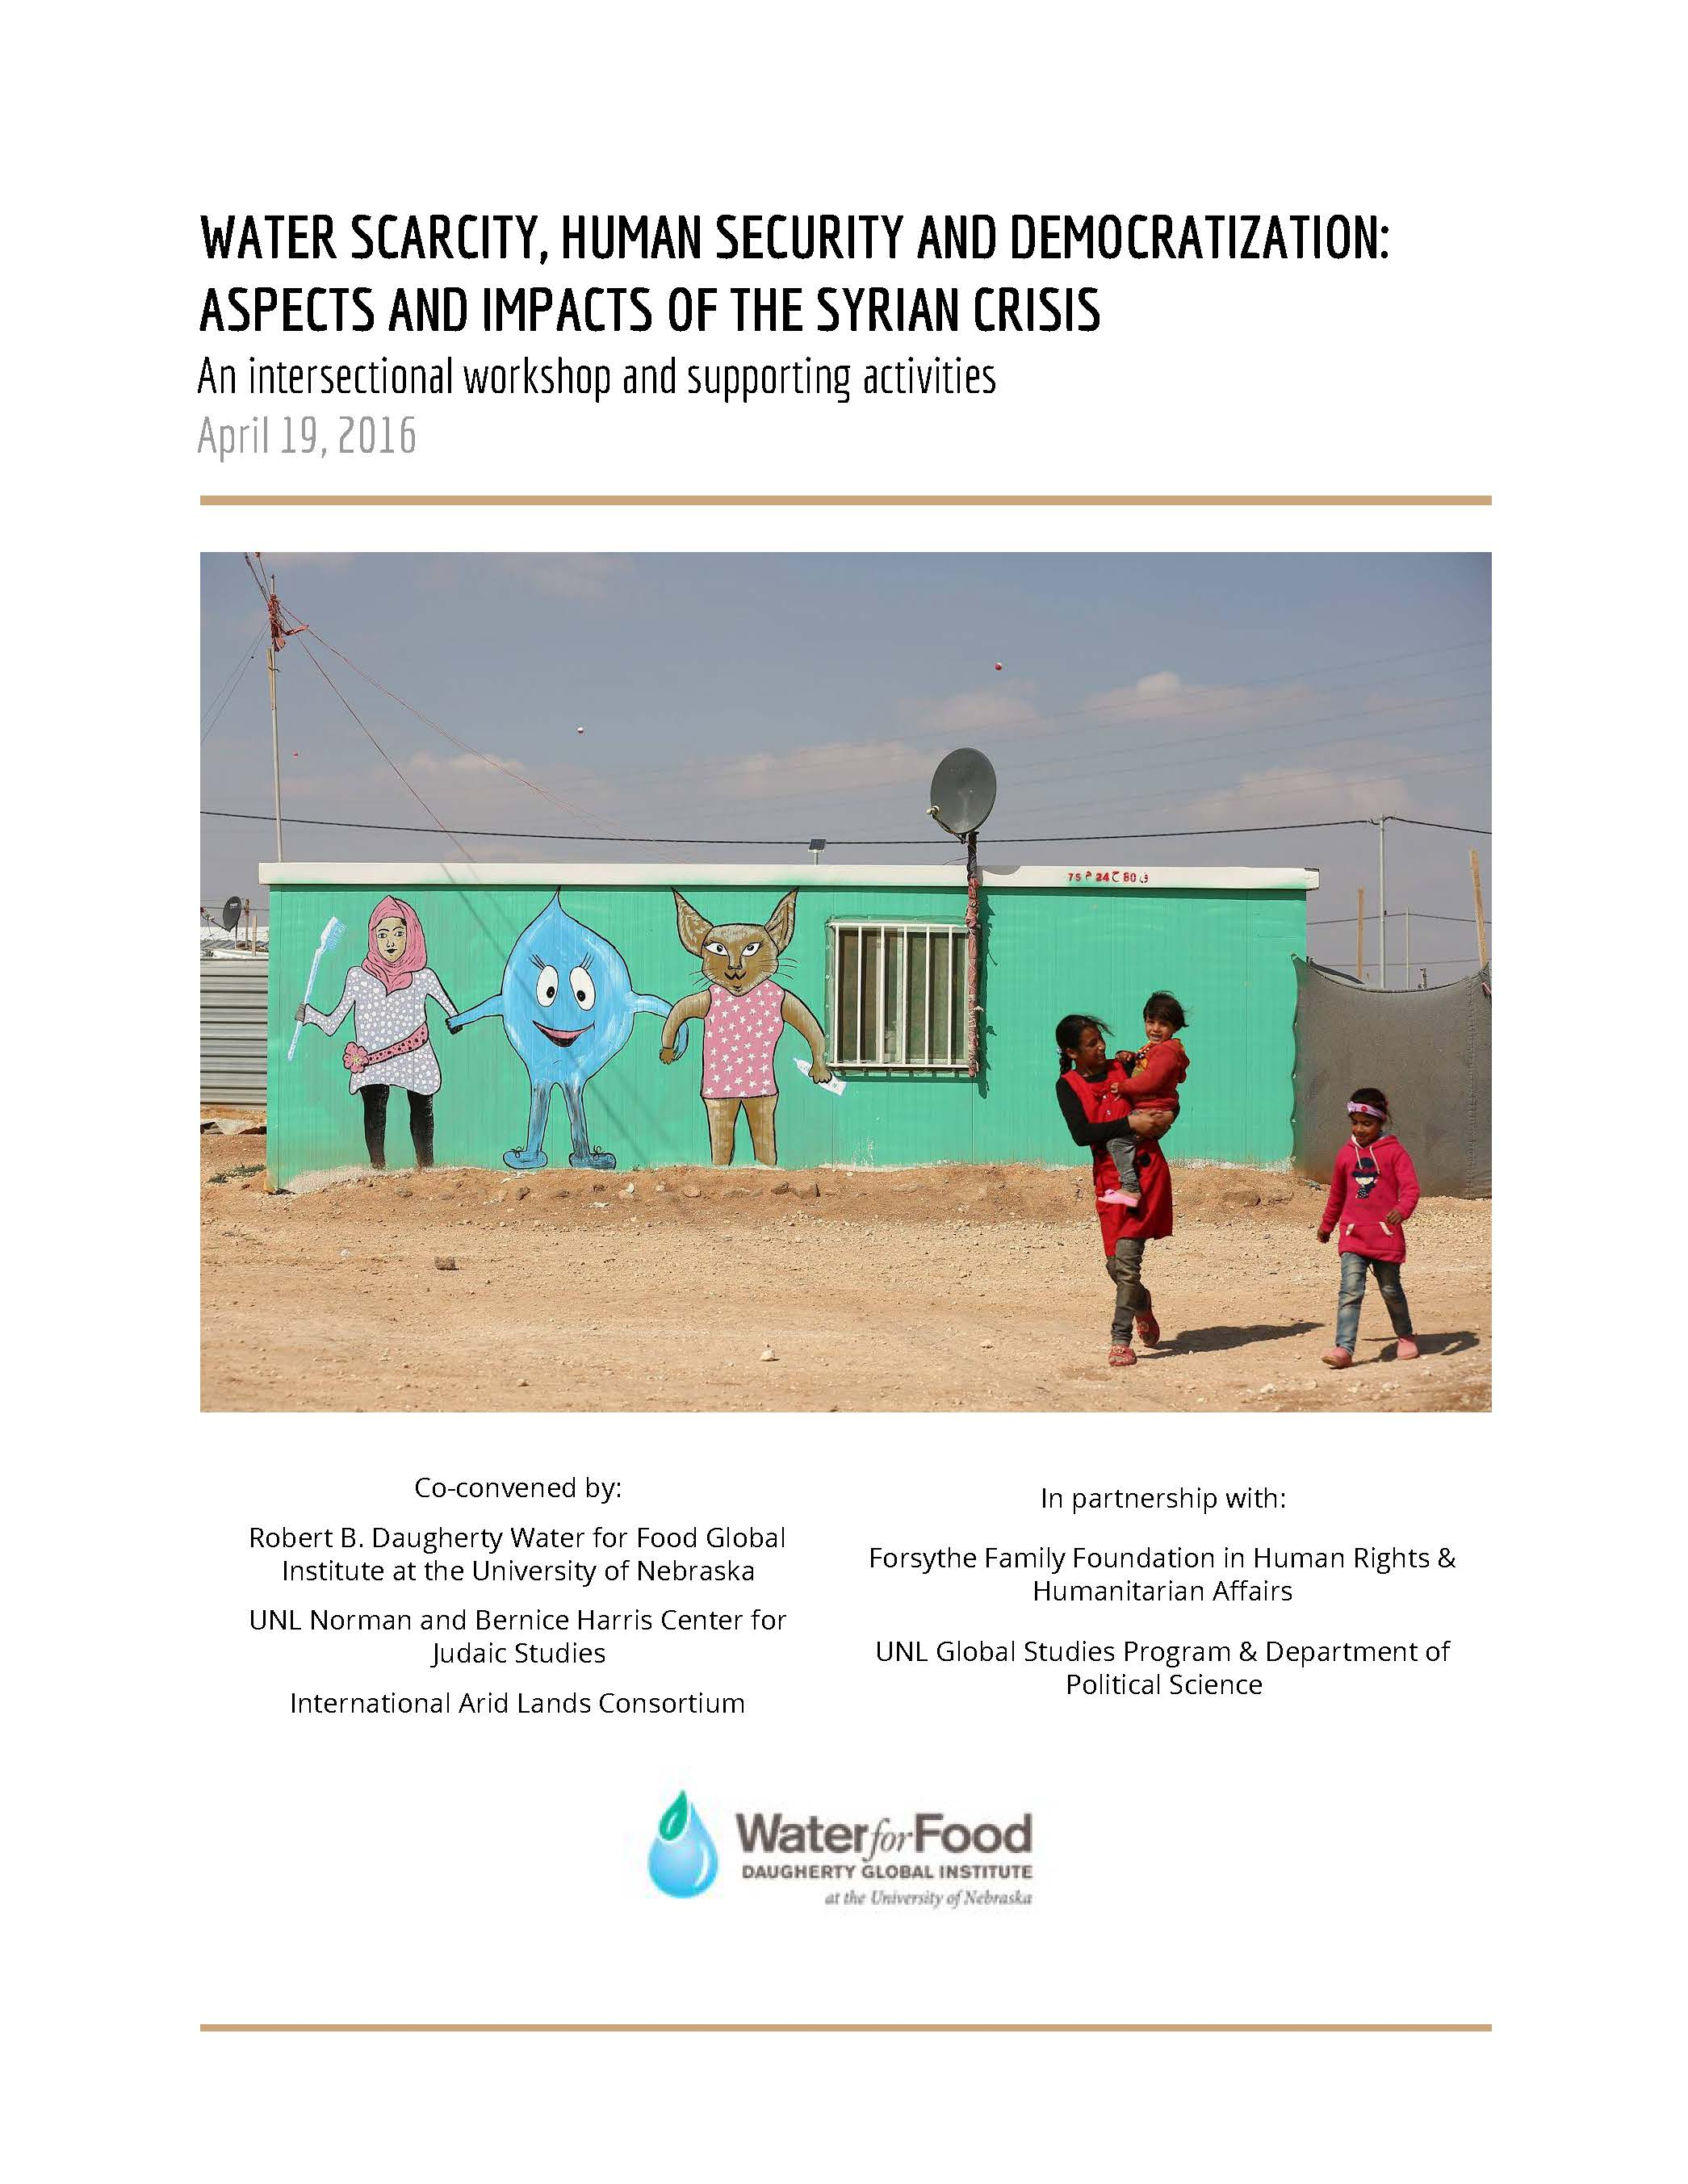 Harris Center was a major co-sponsor of a symposium on water security and the Syrian refugee crisis